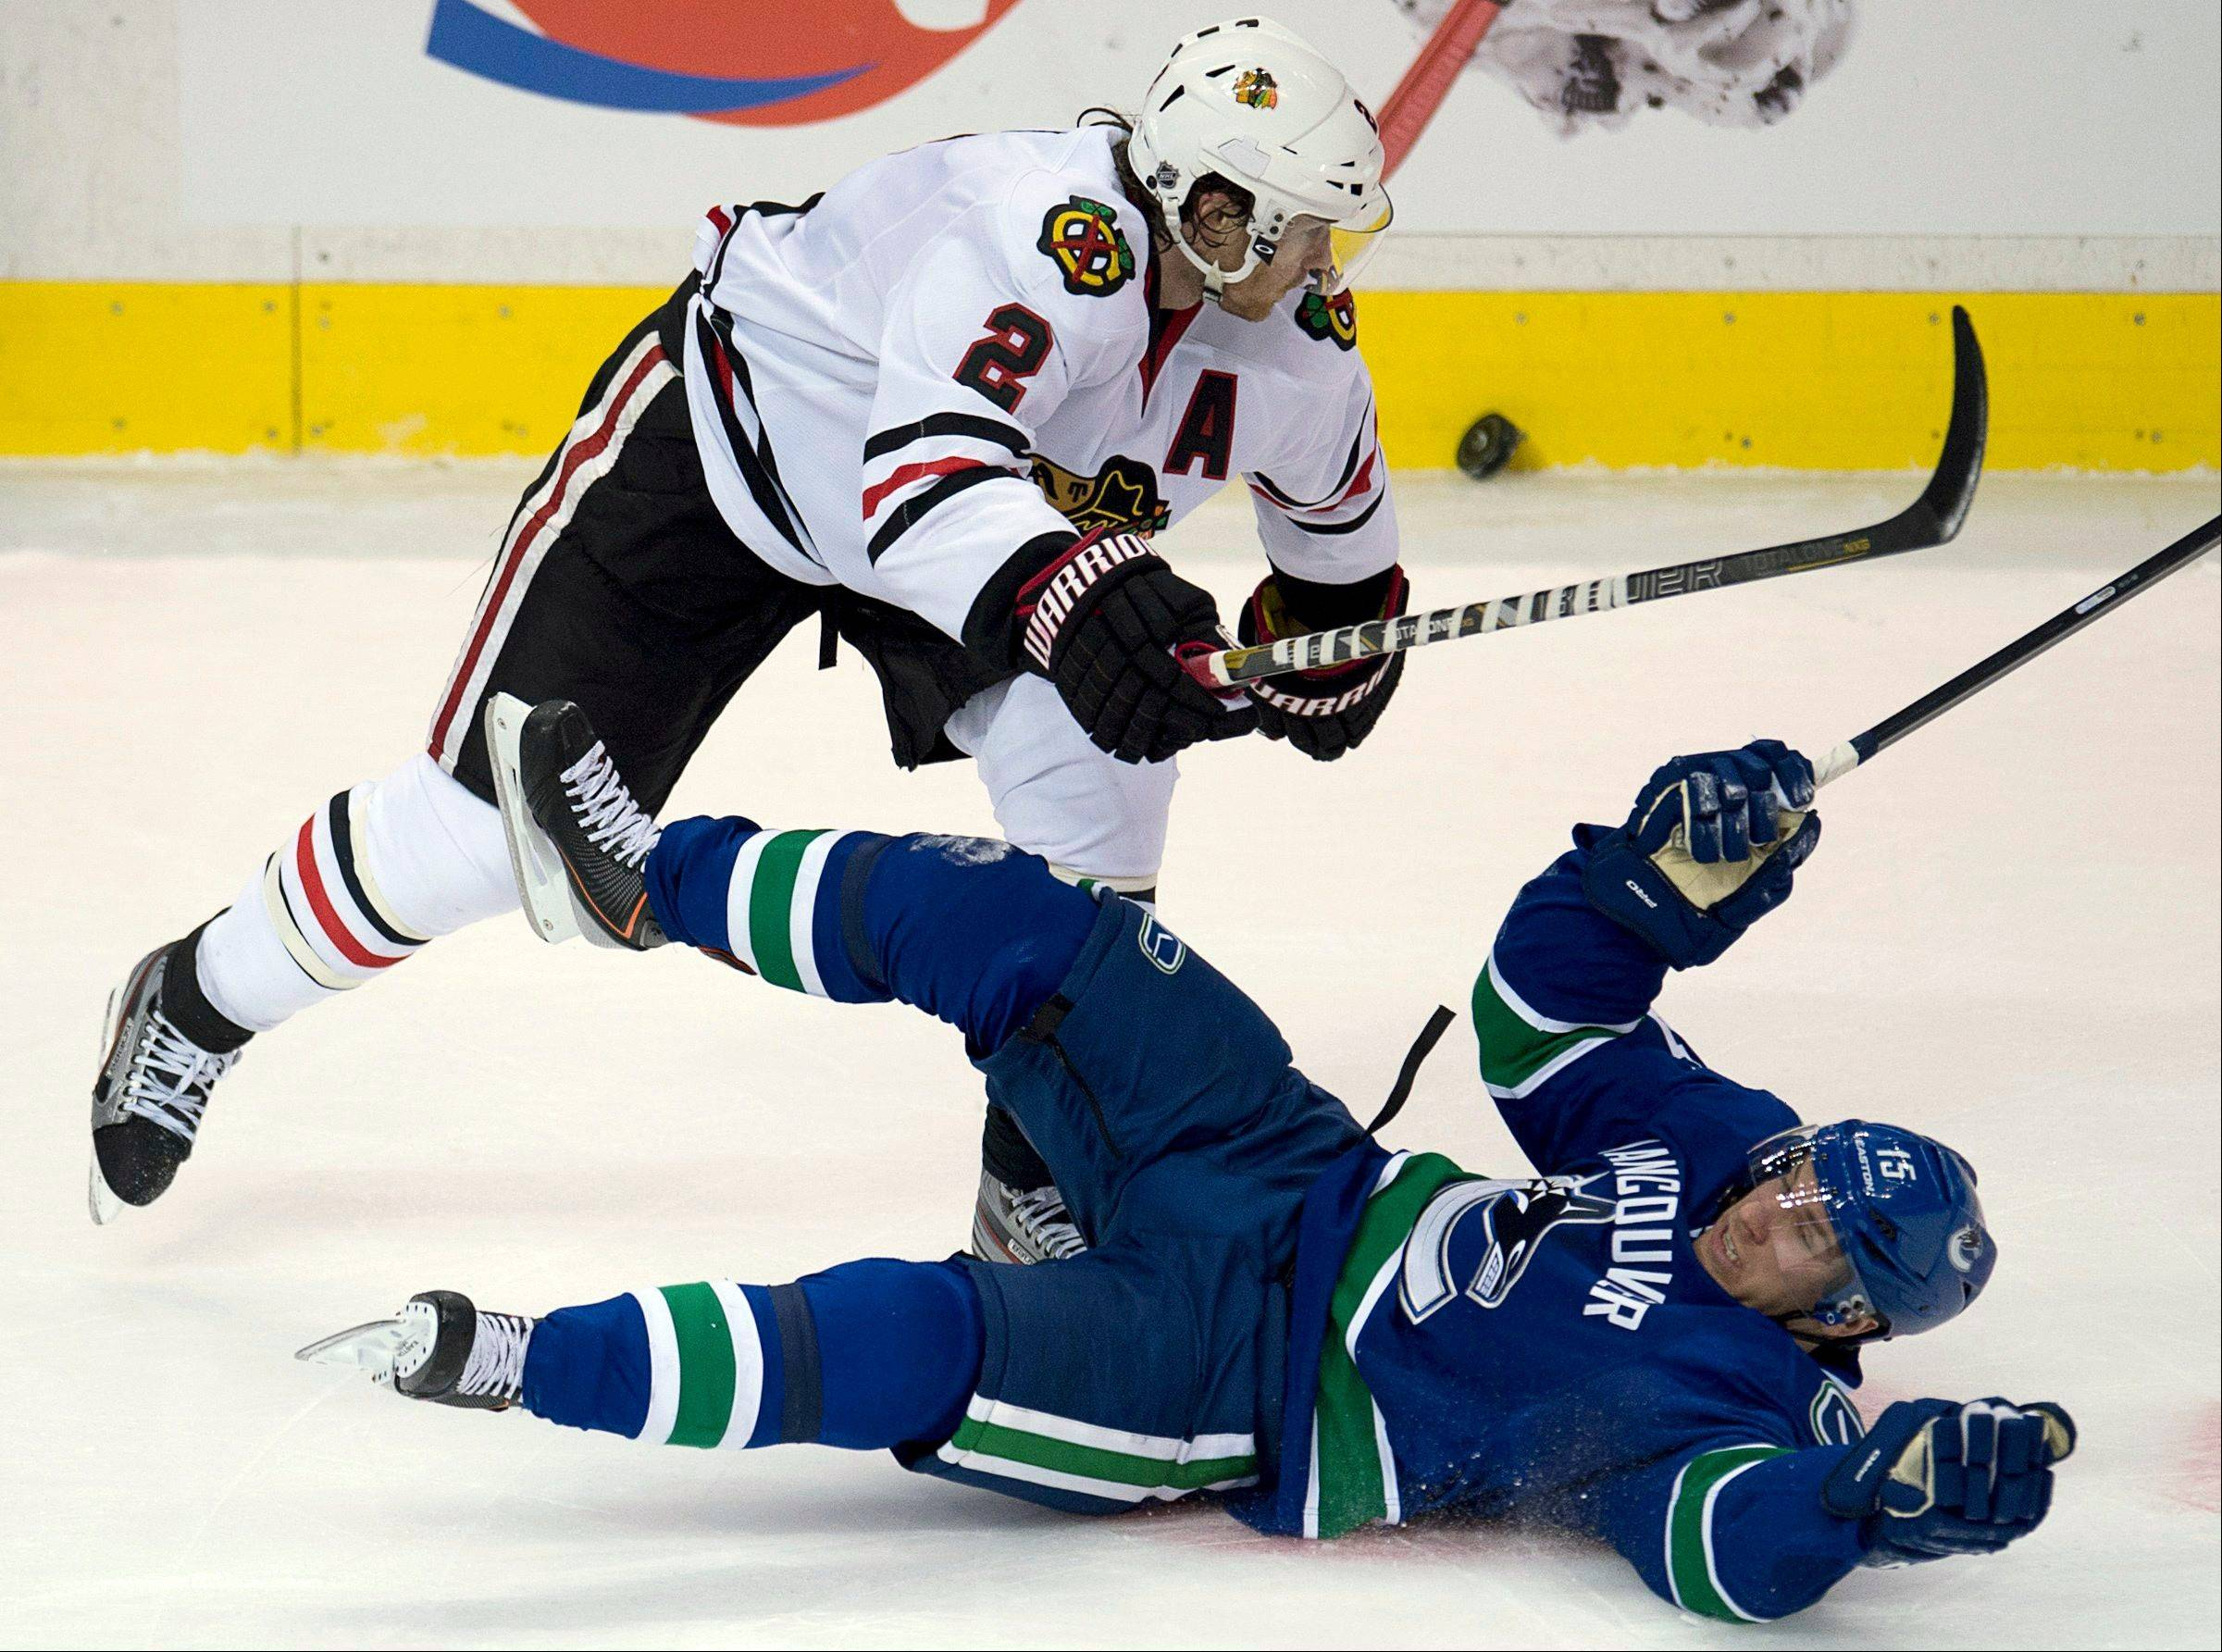 Vancouver center Derek Roy (15) fights for control of the puck with Blackhawks defenseman Duncan Keith during Monday's 3-1 win over Hawks. After the game, Keith took issue with a reporter's questions.